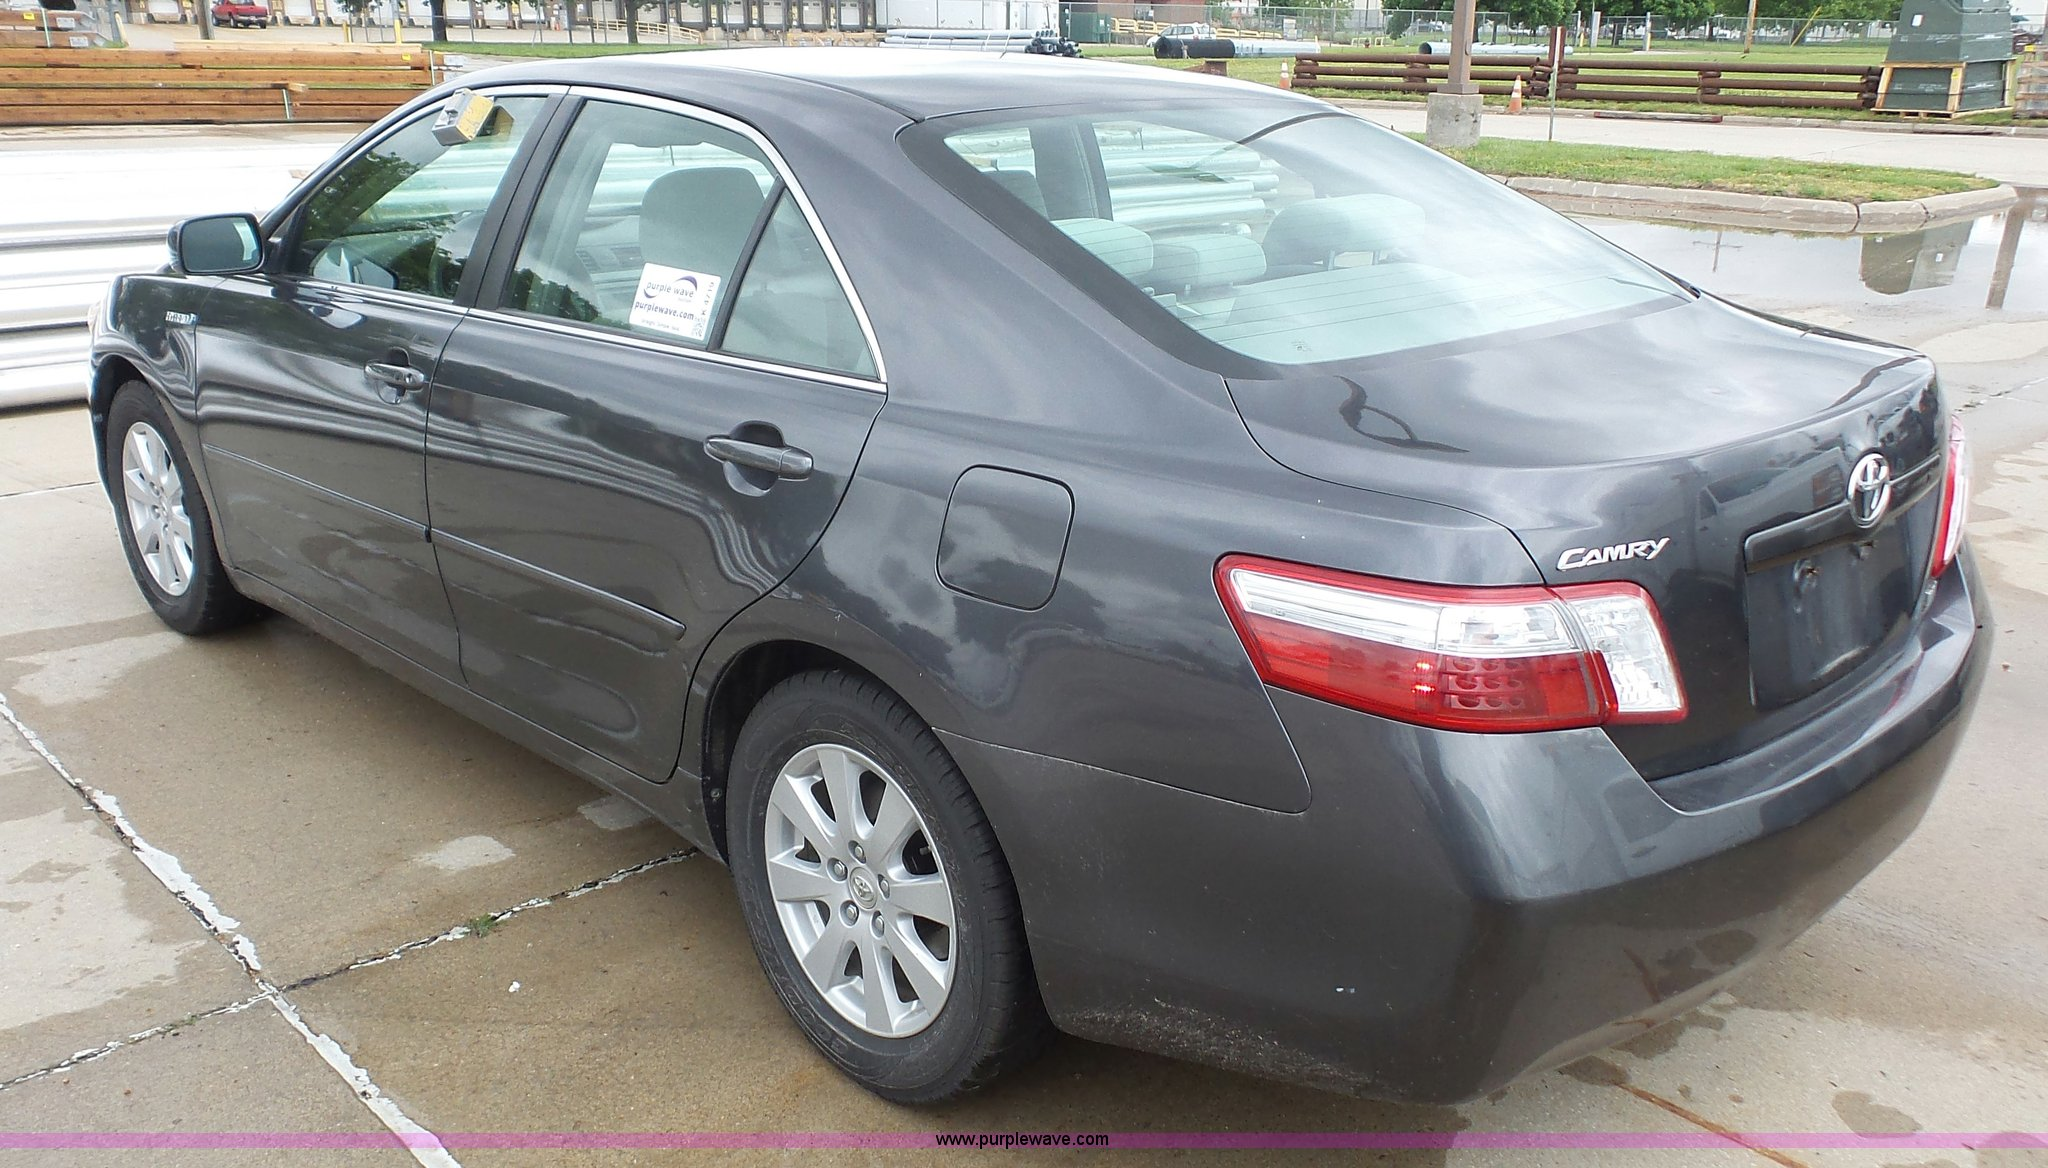 sale for now camry buy toyota craigslist